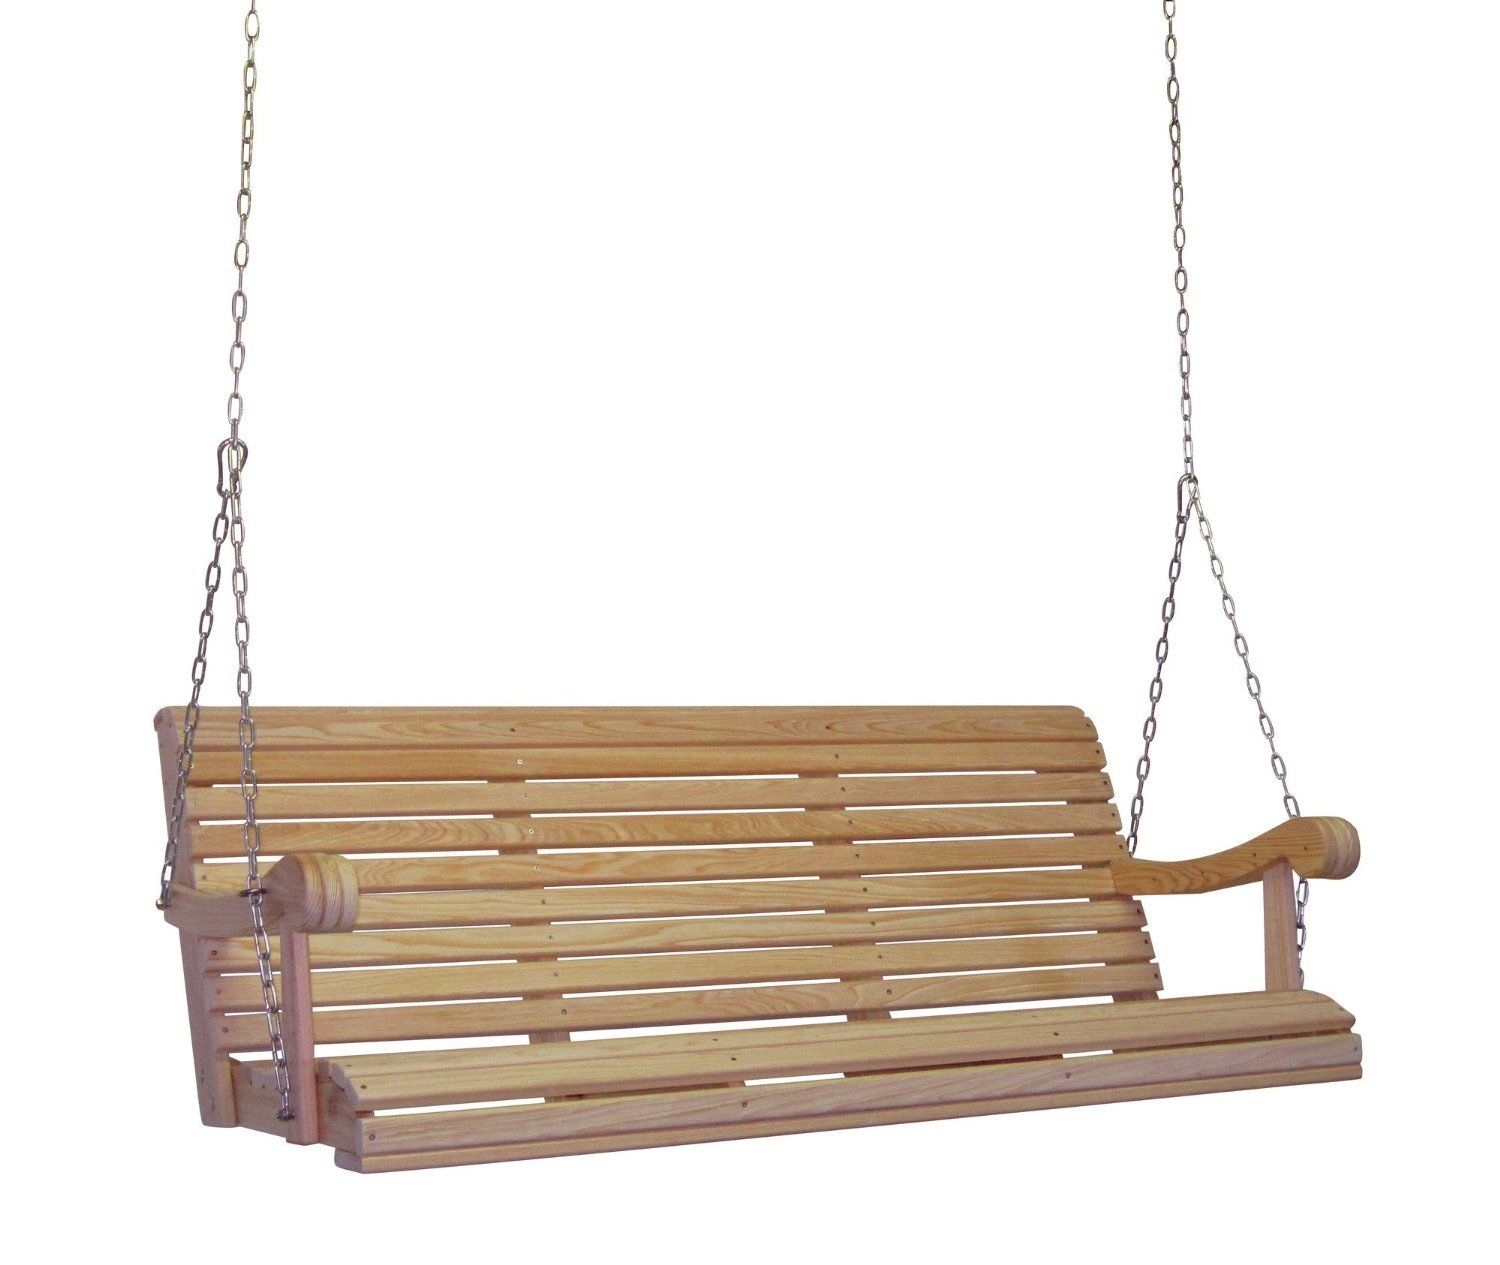 HershyWay Outdoor Cypress Lumber Grandpa Porch Swing With Stainless Steel